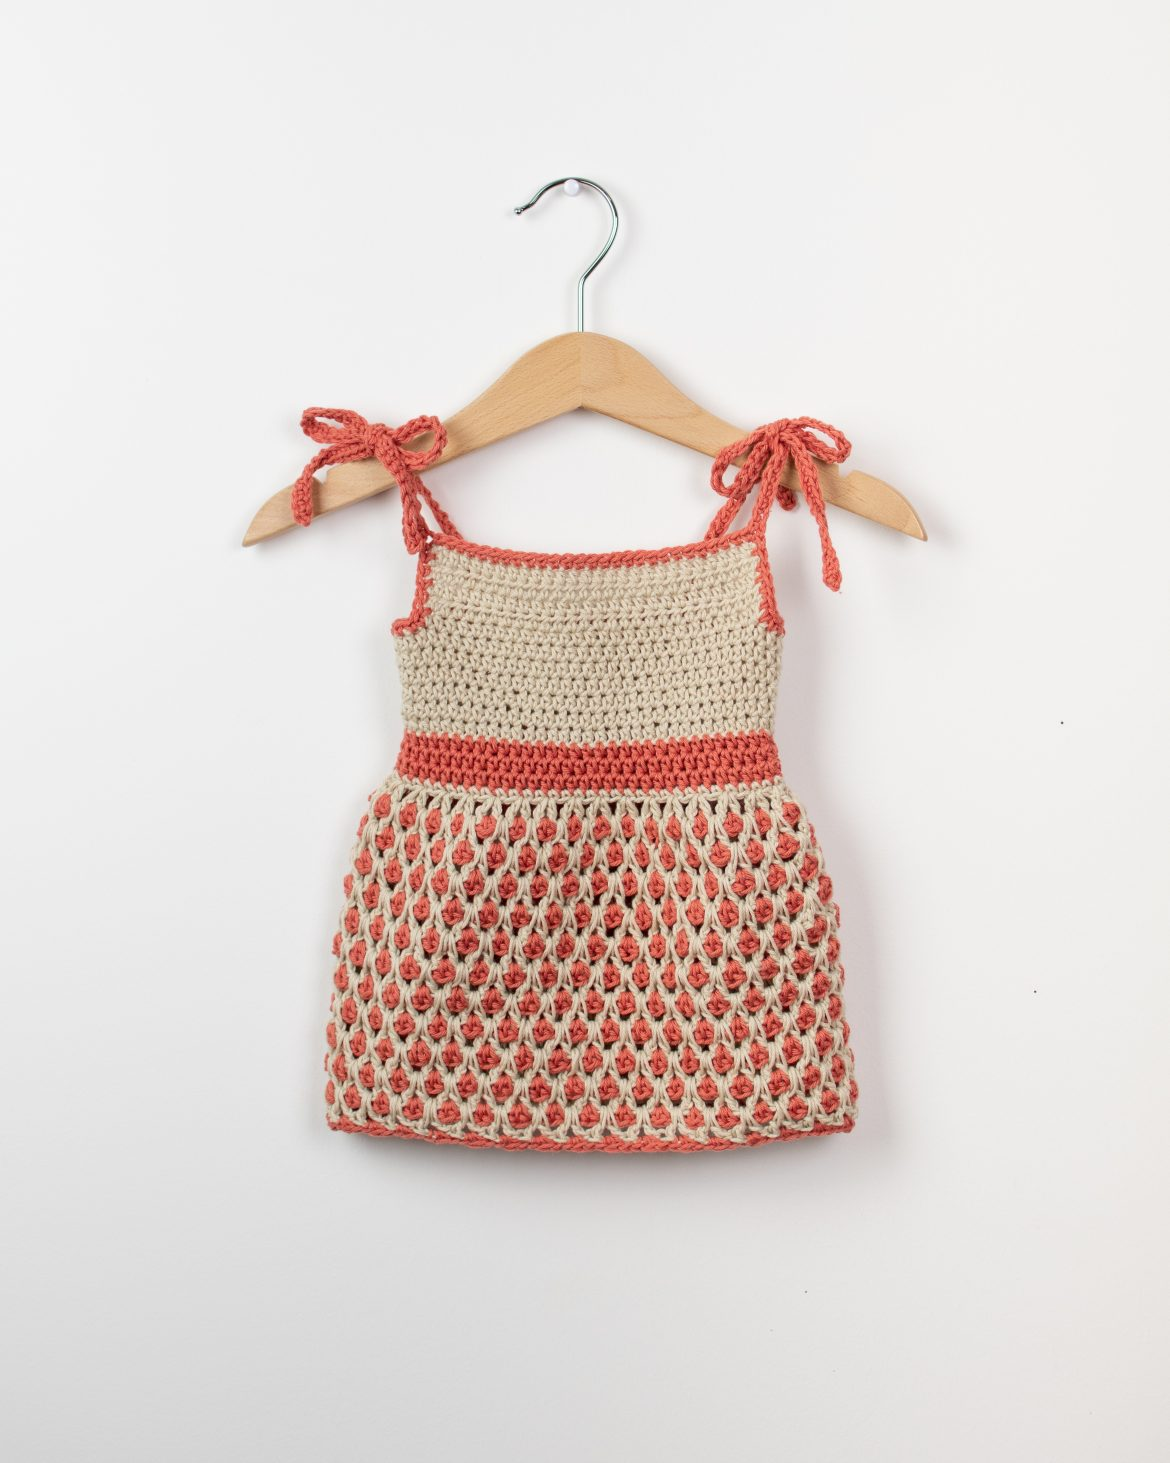 This is a simple and easy to understand crochet pattern that will show you how to crochet a baby dress.